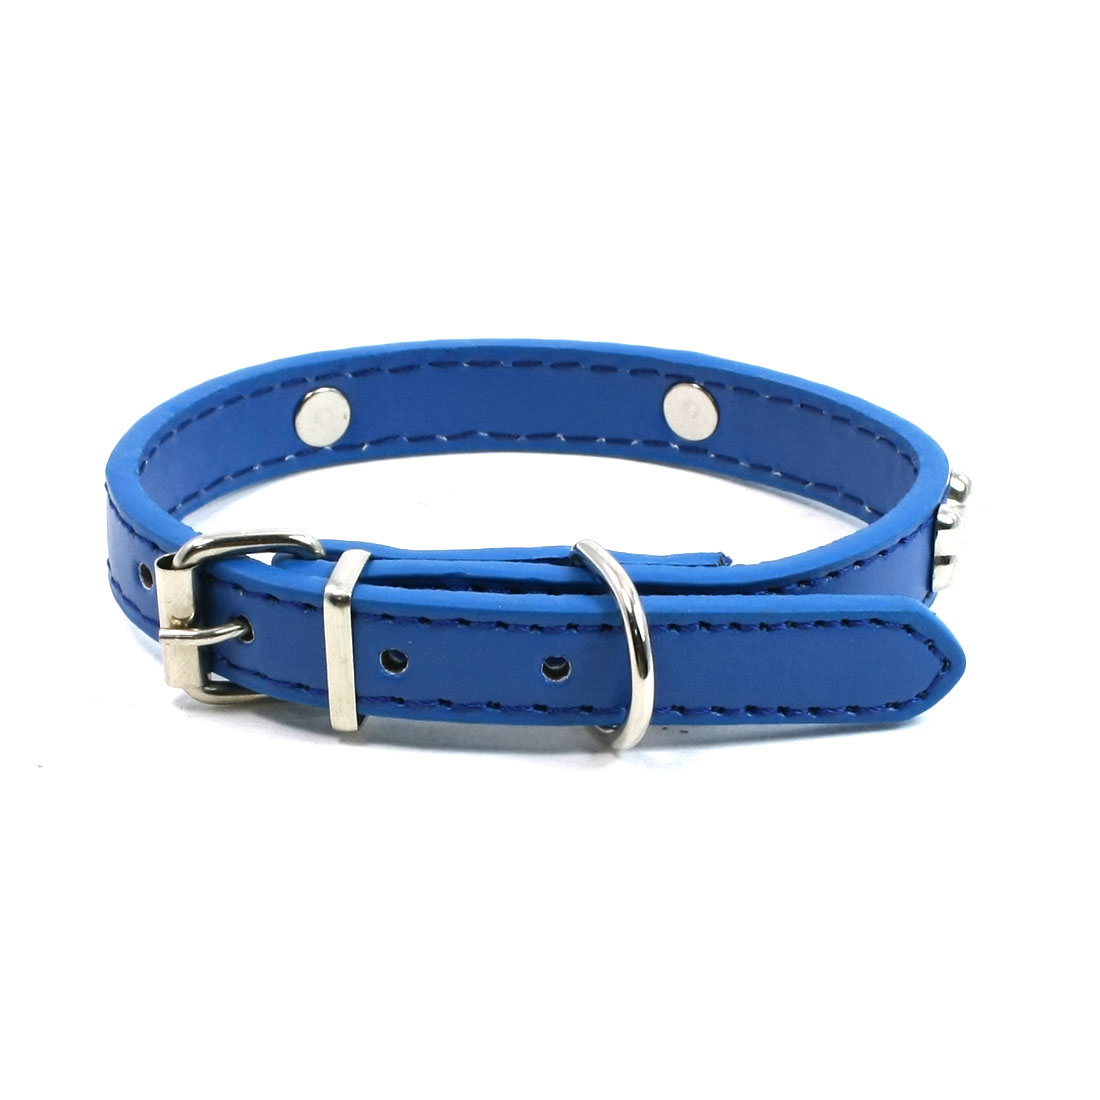 Metal Single Pin Buckle 1.5cm Wide Bone Detail Faux Leather Pet Dog Collar Blue